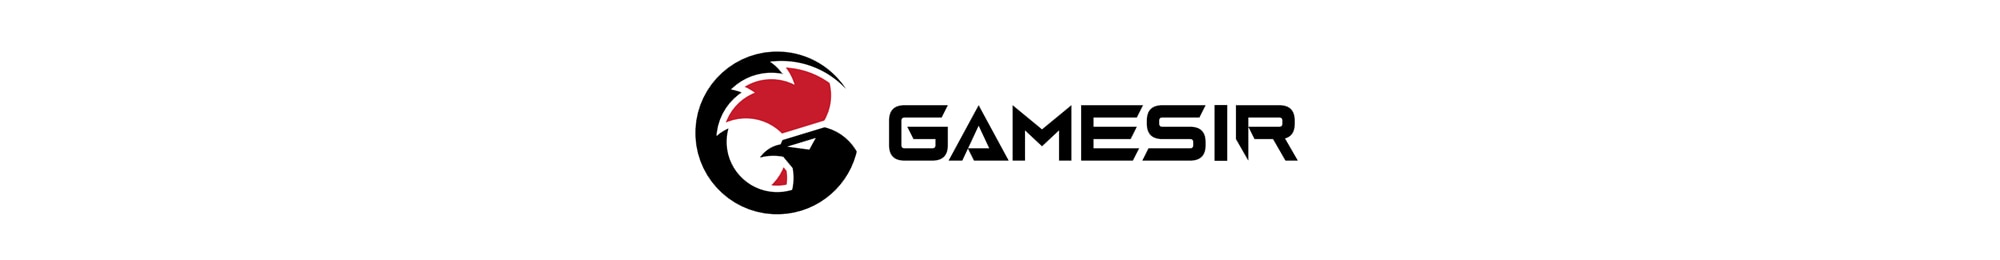 GameSir F4 Falcon PUBG Mobile Gaming Controller Gamepad Plug and Play for iOS / Android Zero Latency for Call of Duty